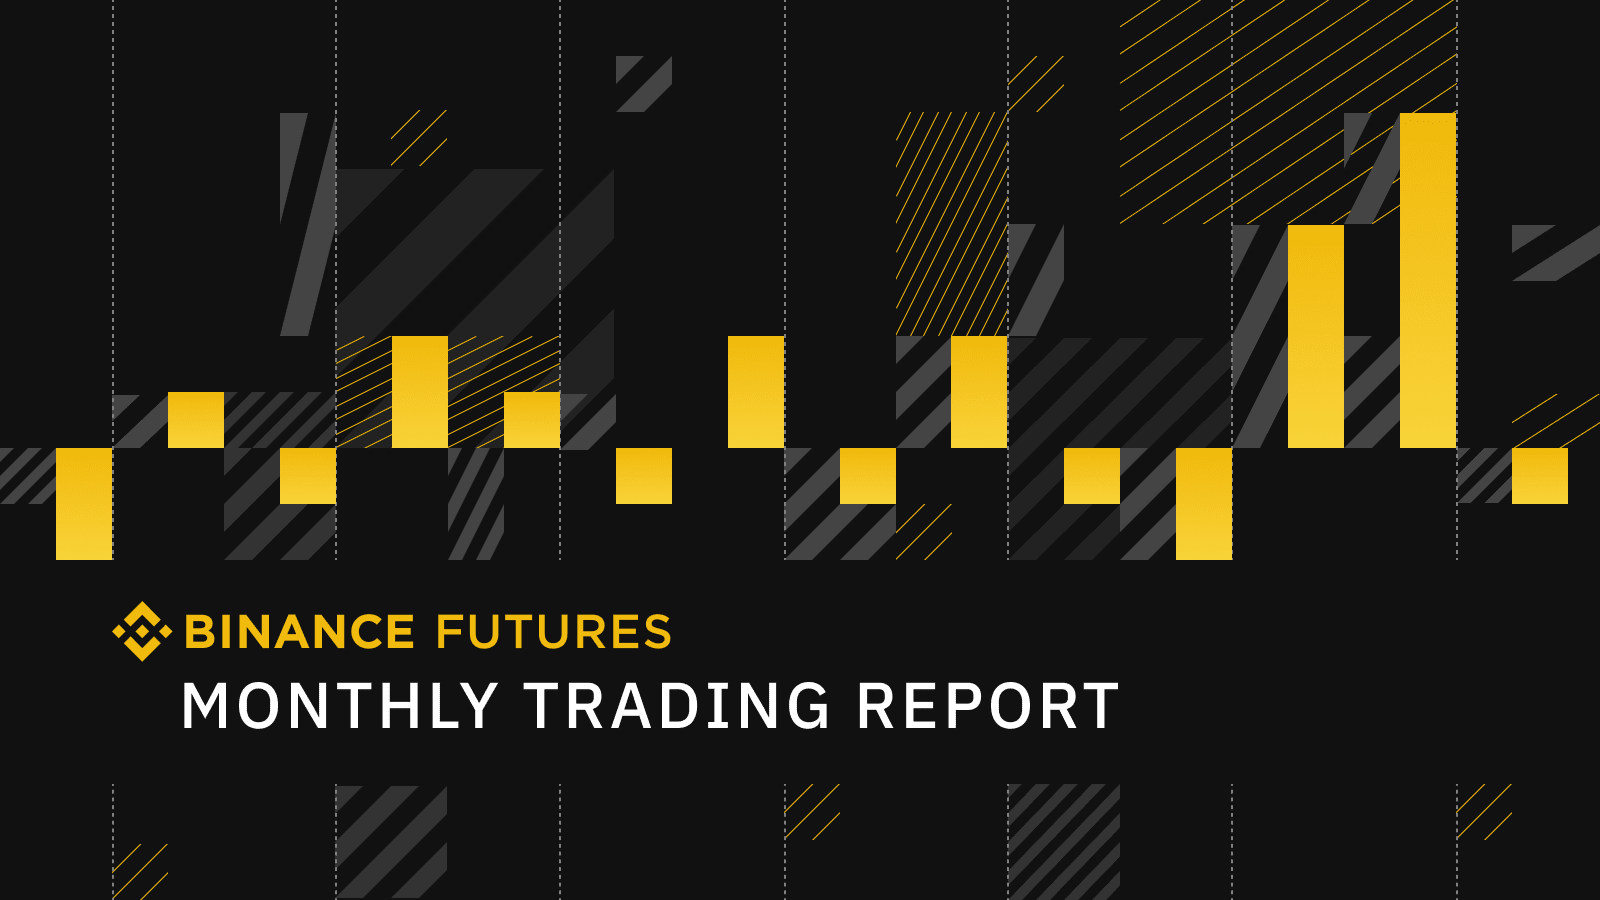 January Trading Report: Bitcoin's On-Chain Activity Hits Record Levels - Can BTC Cross $42,000 Soon?Cryptocurrency Trading Signals, Strategies & Templates   DexStrats